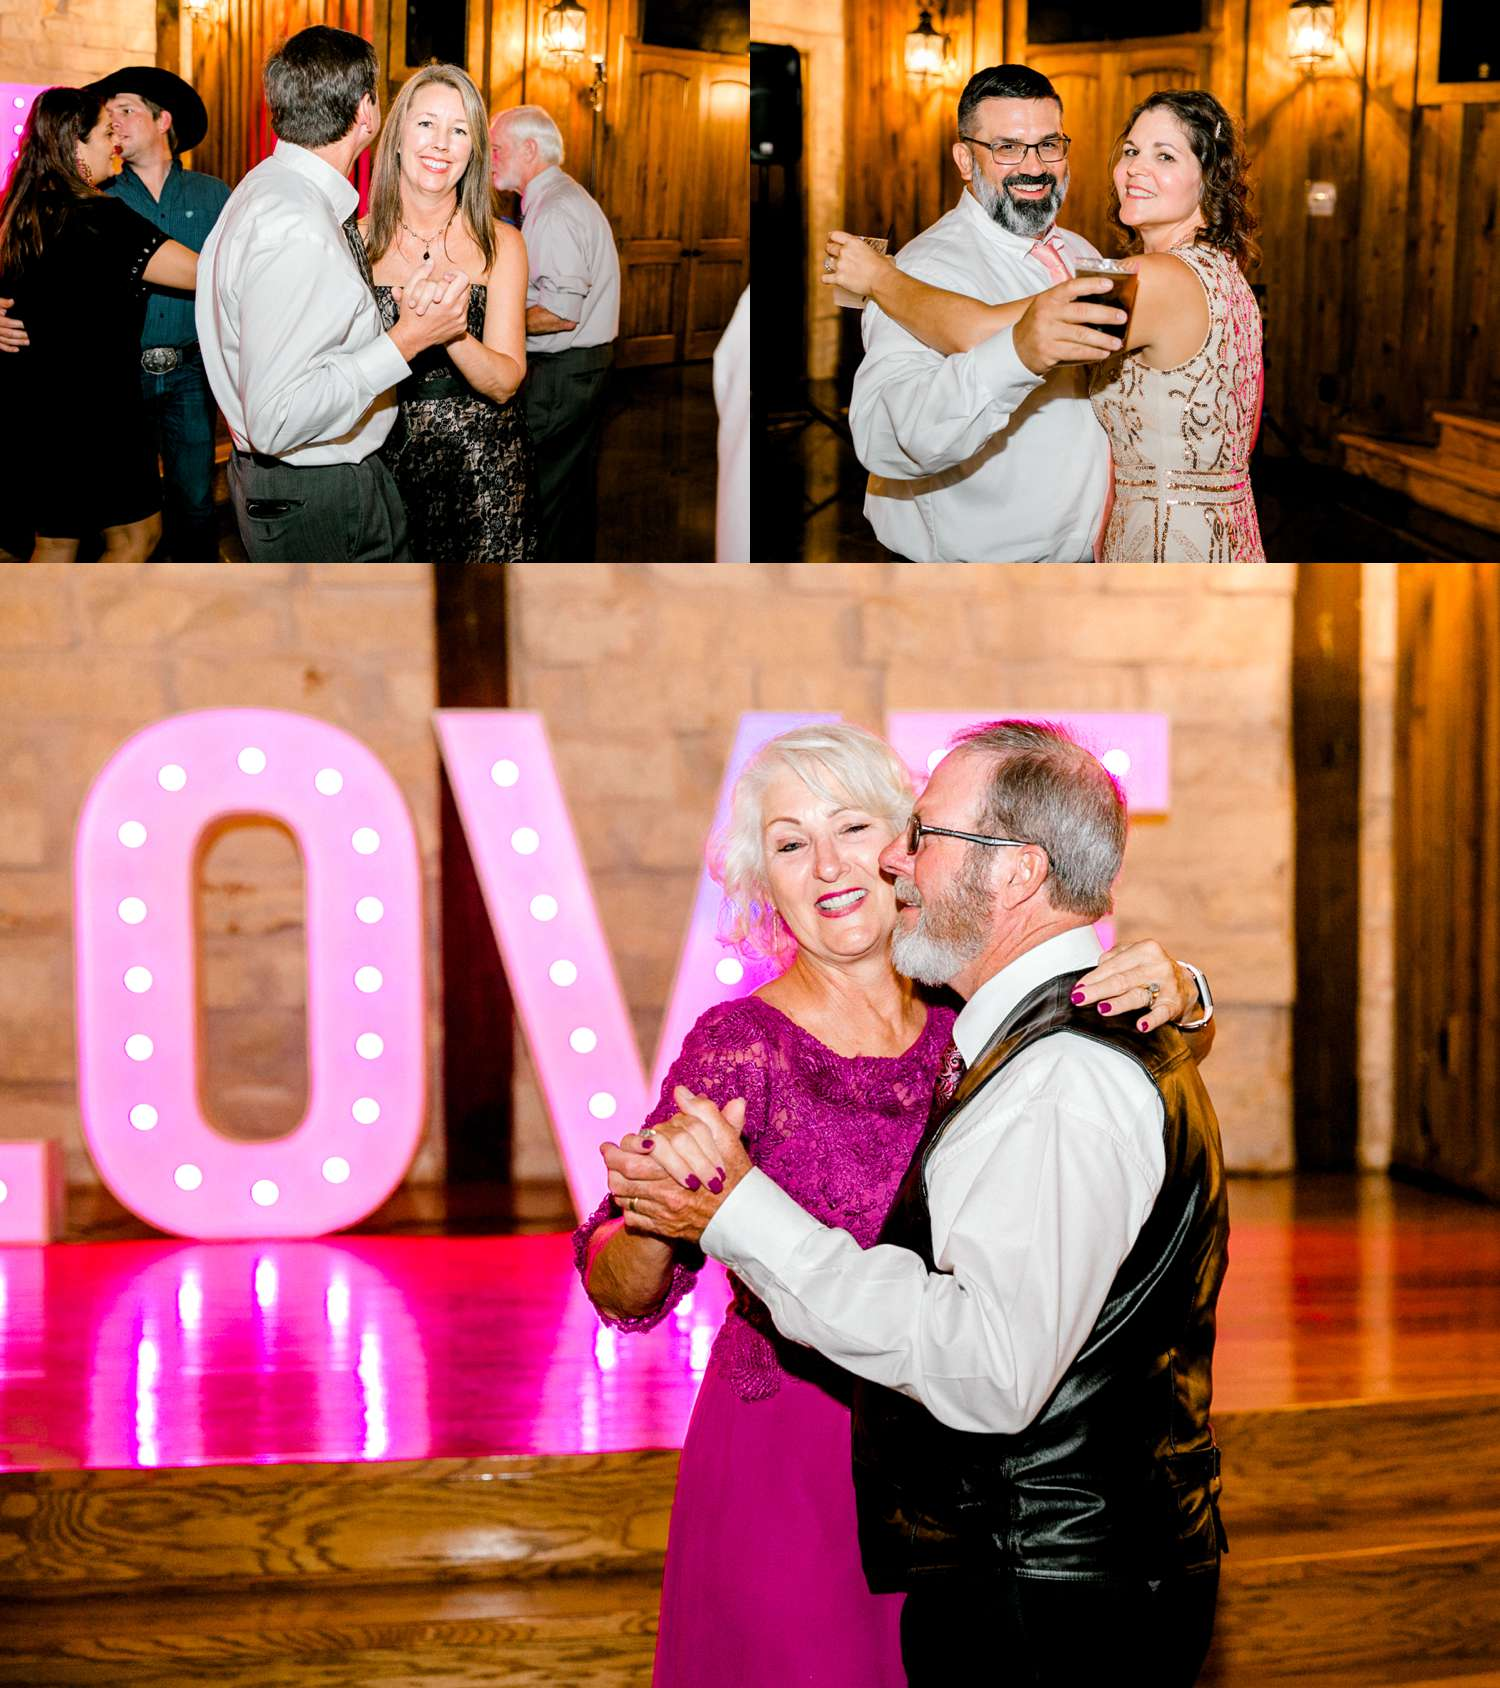 JESSICA+LYLE+NEEL+THE_SPRINGS_EVENTS_WEDDING_OKLAHOMA_ALLEEJ_PHOTOGRAPHER_0162.jpg